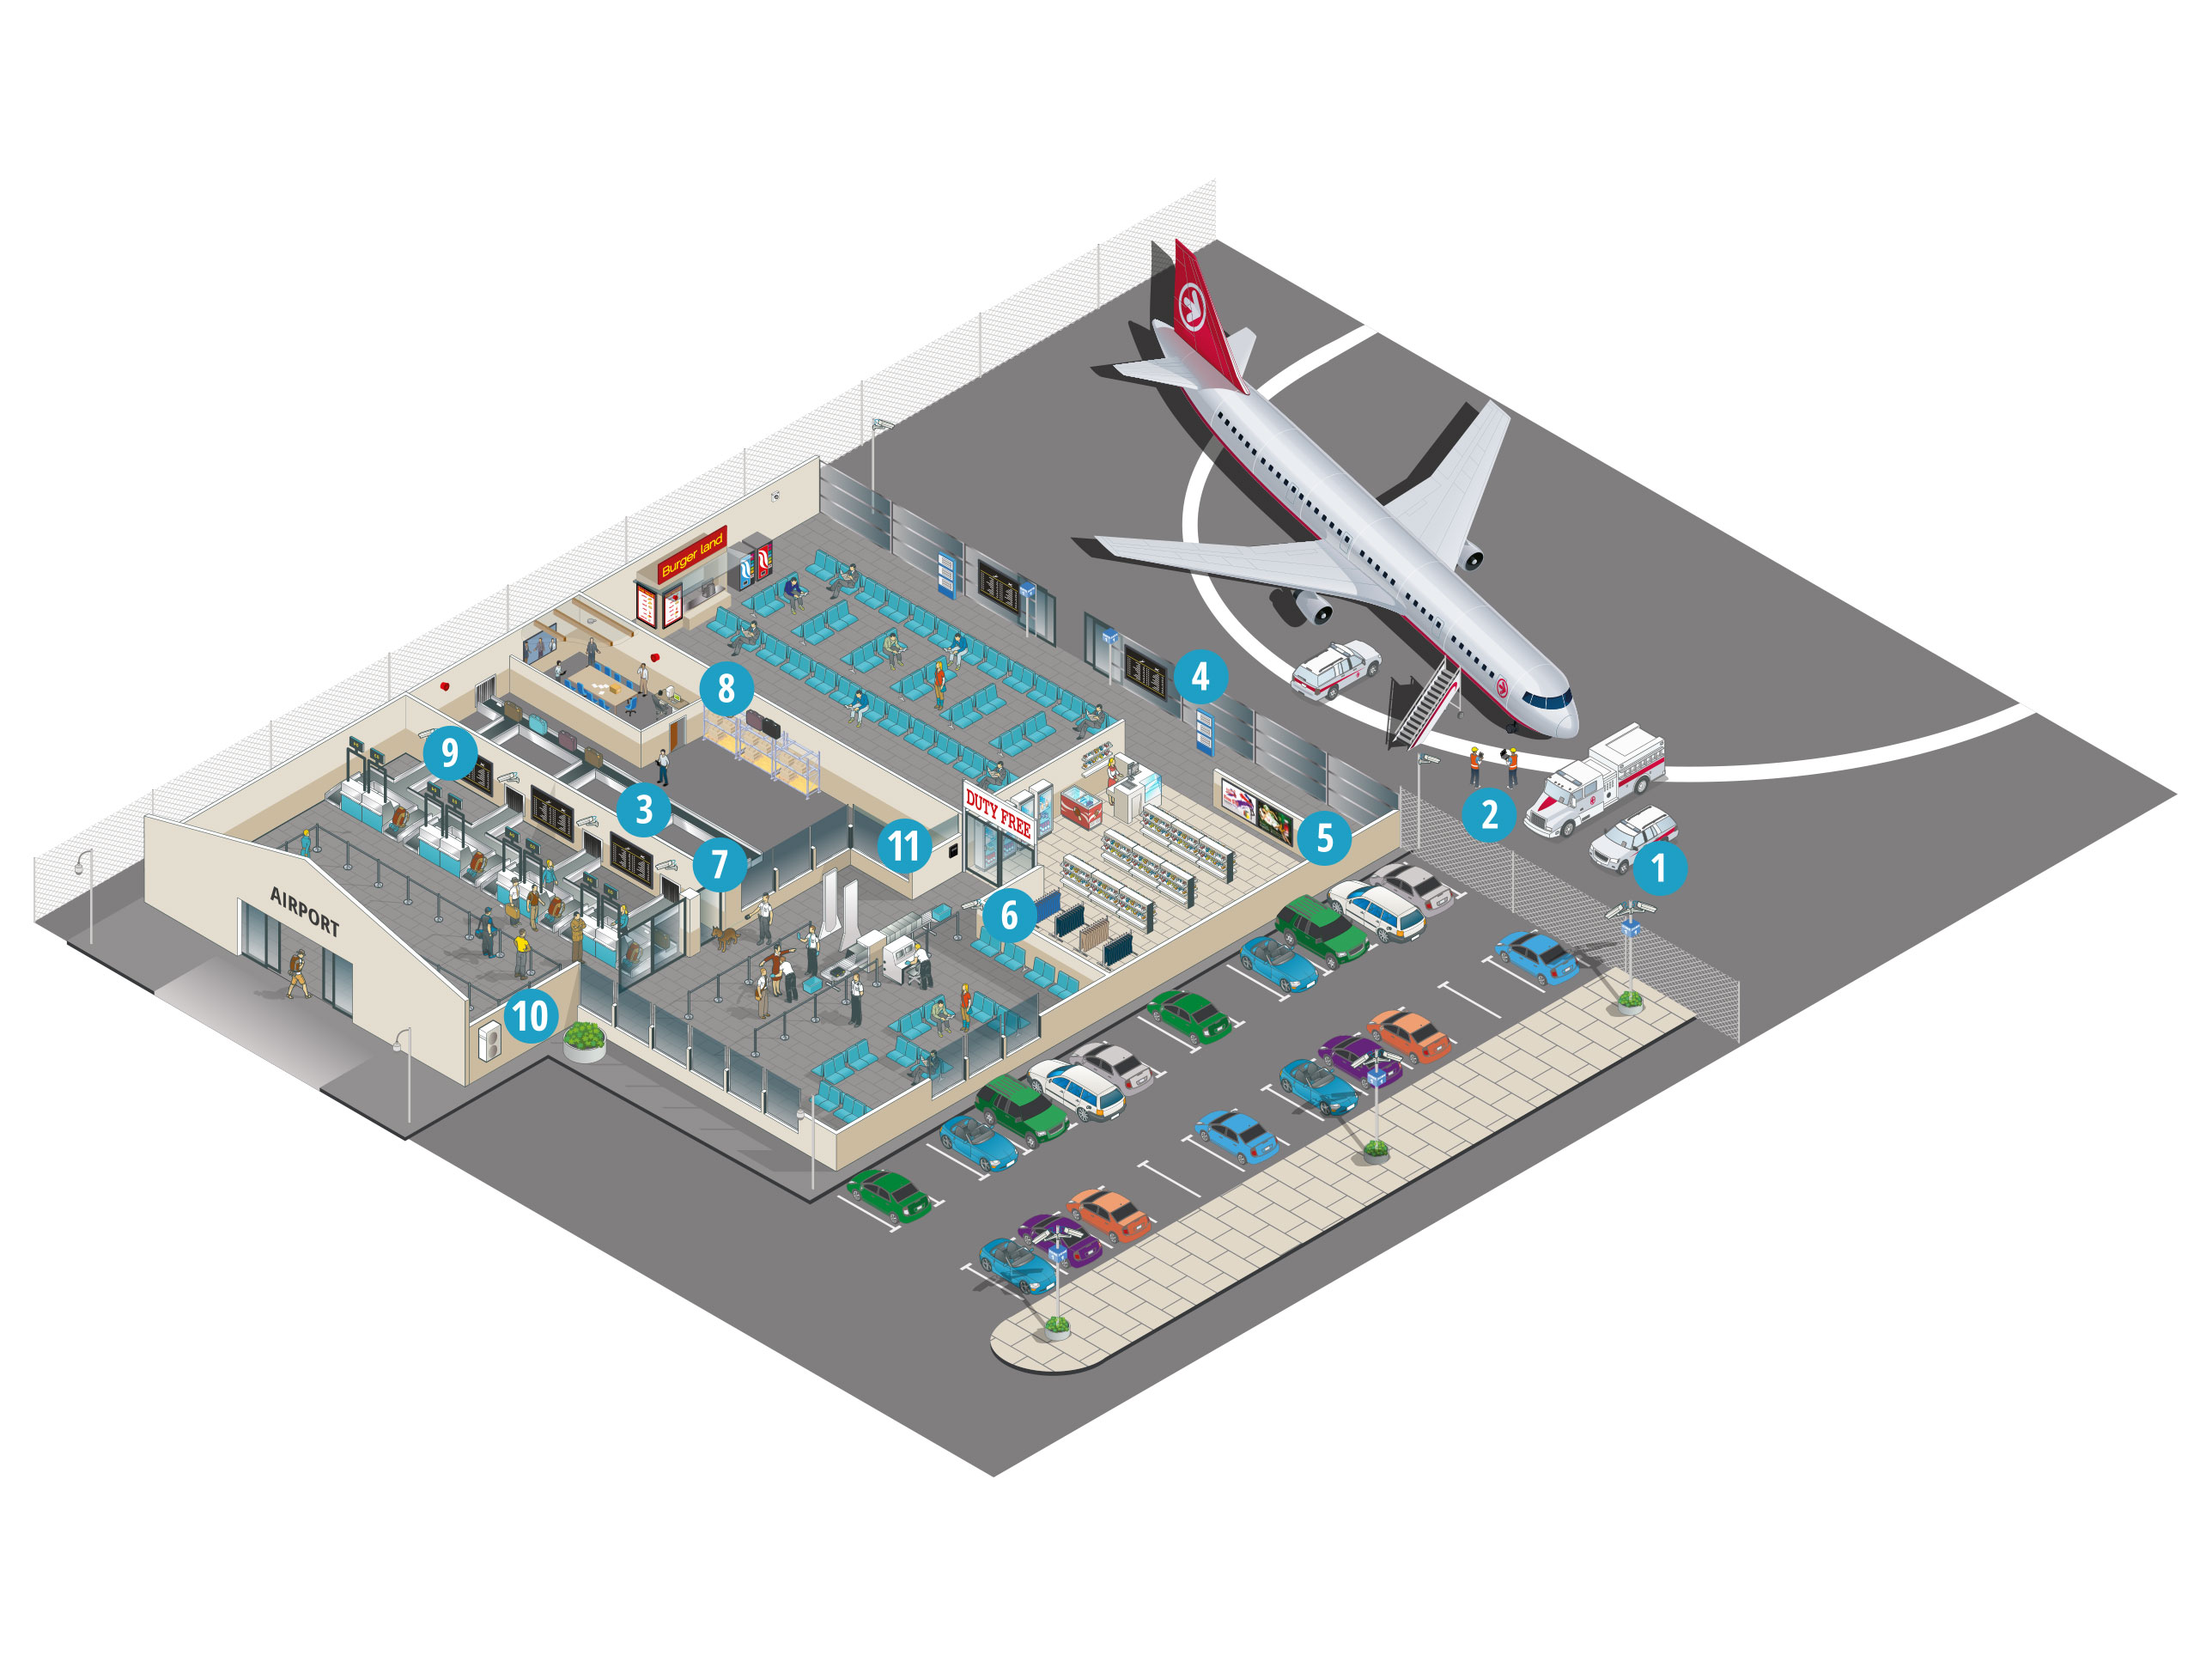 How do Panasonic solutions support aviation?